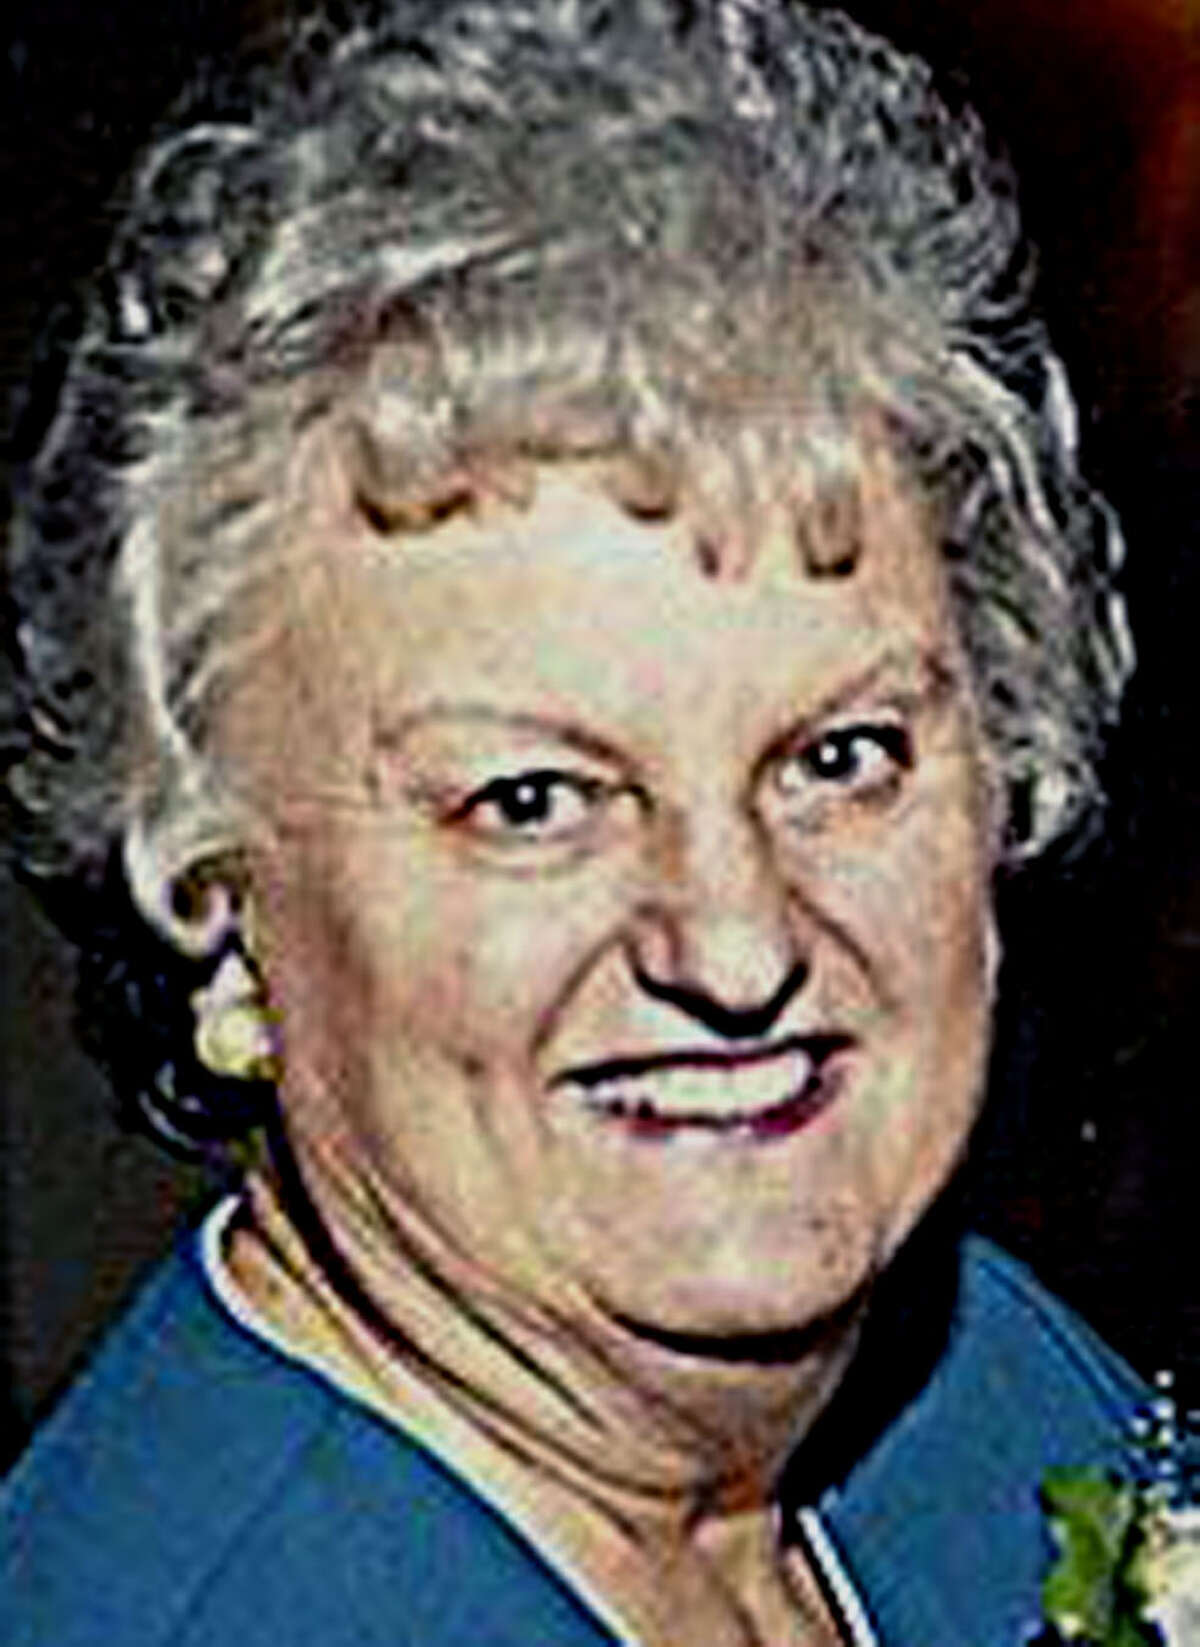 Judith Elwell Olear, 86, died Aug. 23, 2013, at New Milford Hospital. Judy was the wife of John Olear for 60 years. She was born June 7, 1927, in New Haven, the daughter of the late William B. Elwell and Lucy Ives (Stevens) Elwell.